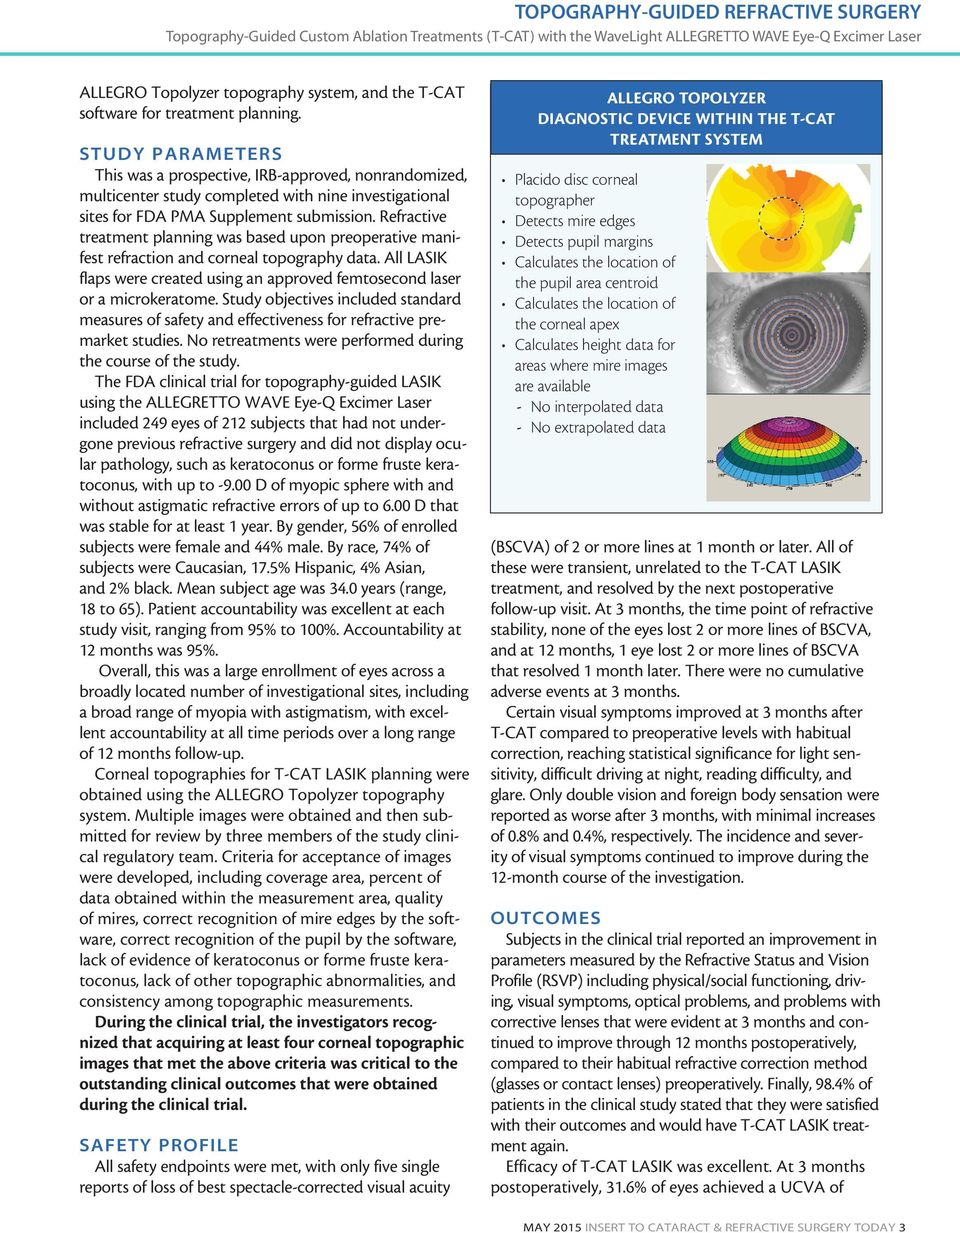 Refractive treatment planning was based upon preoperative manifest refraction and corneal topography data. All LASIK flaps were created using an approved femtosecond laser or a microkeratome.